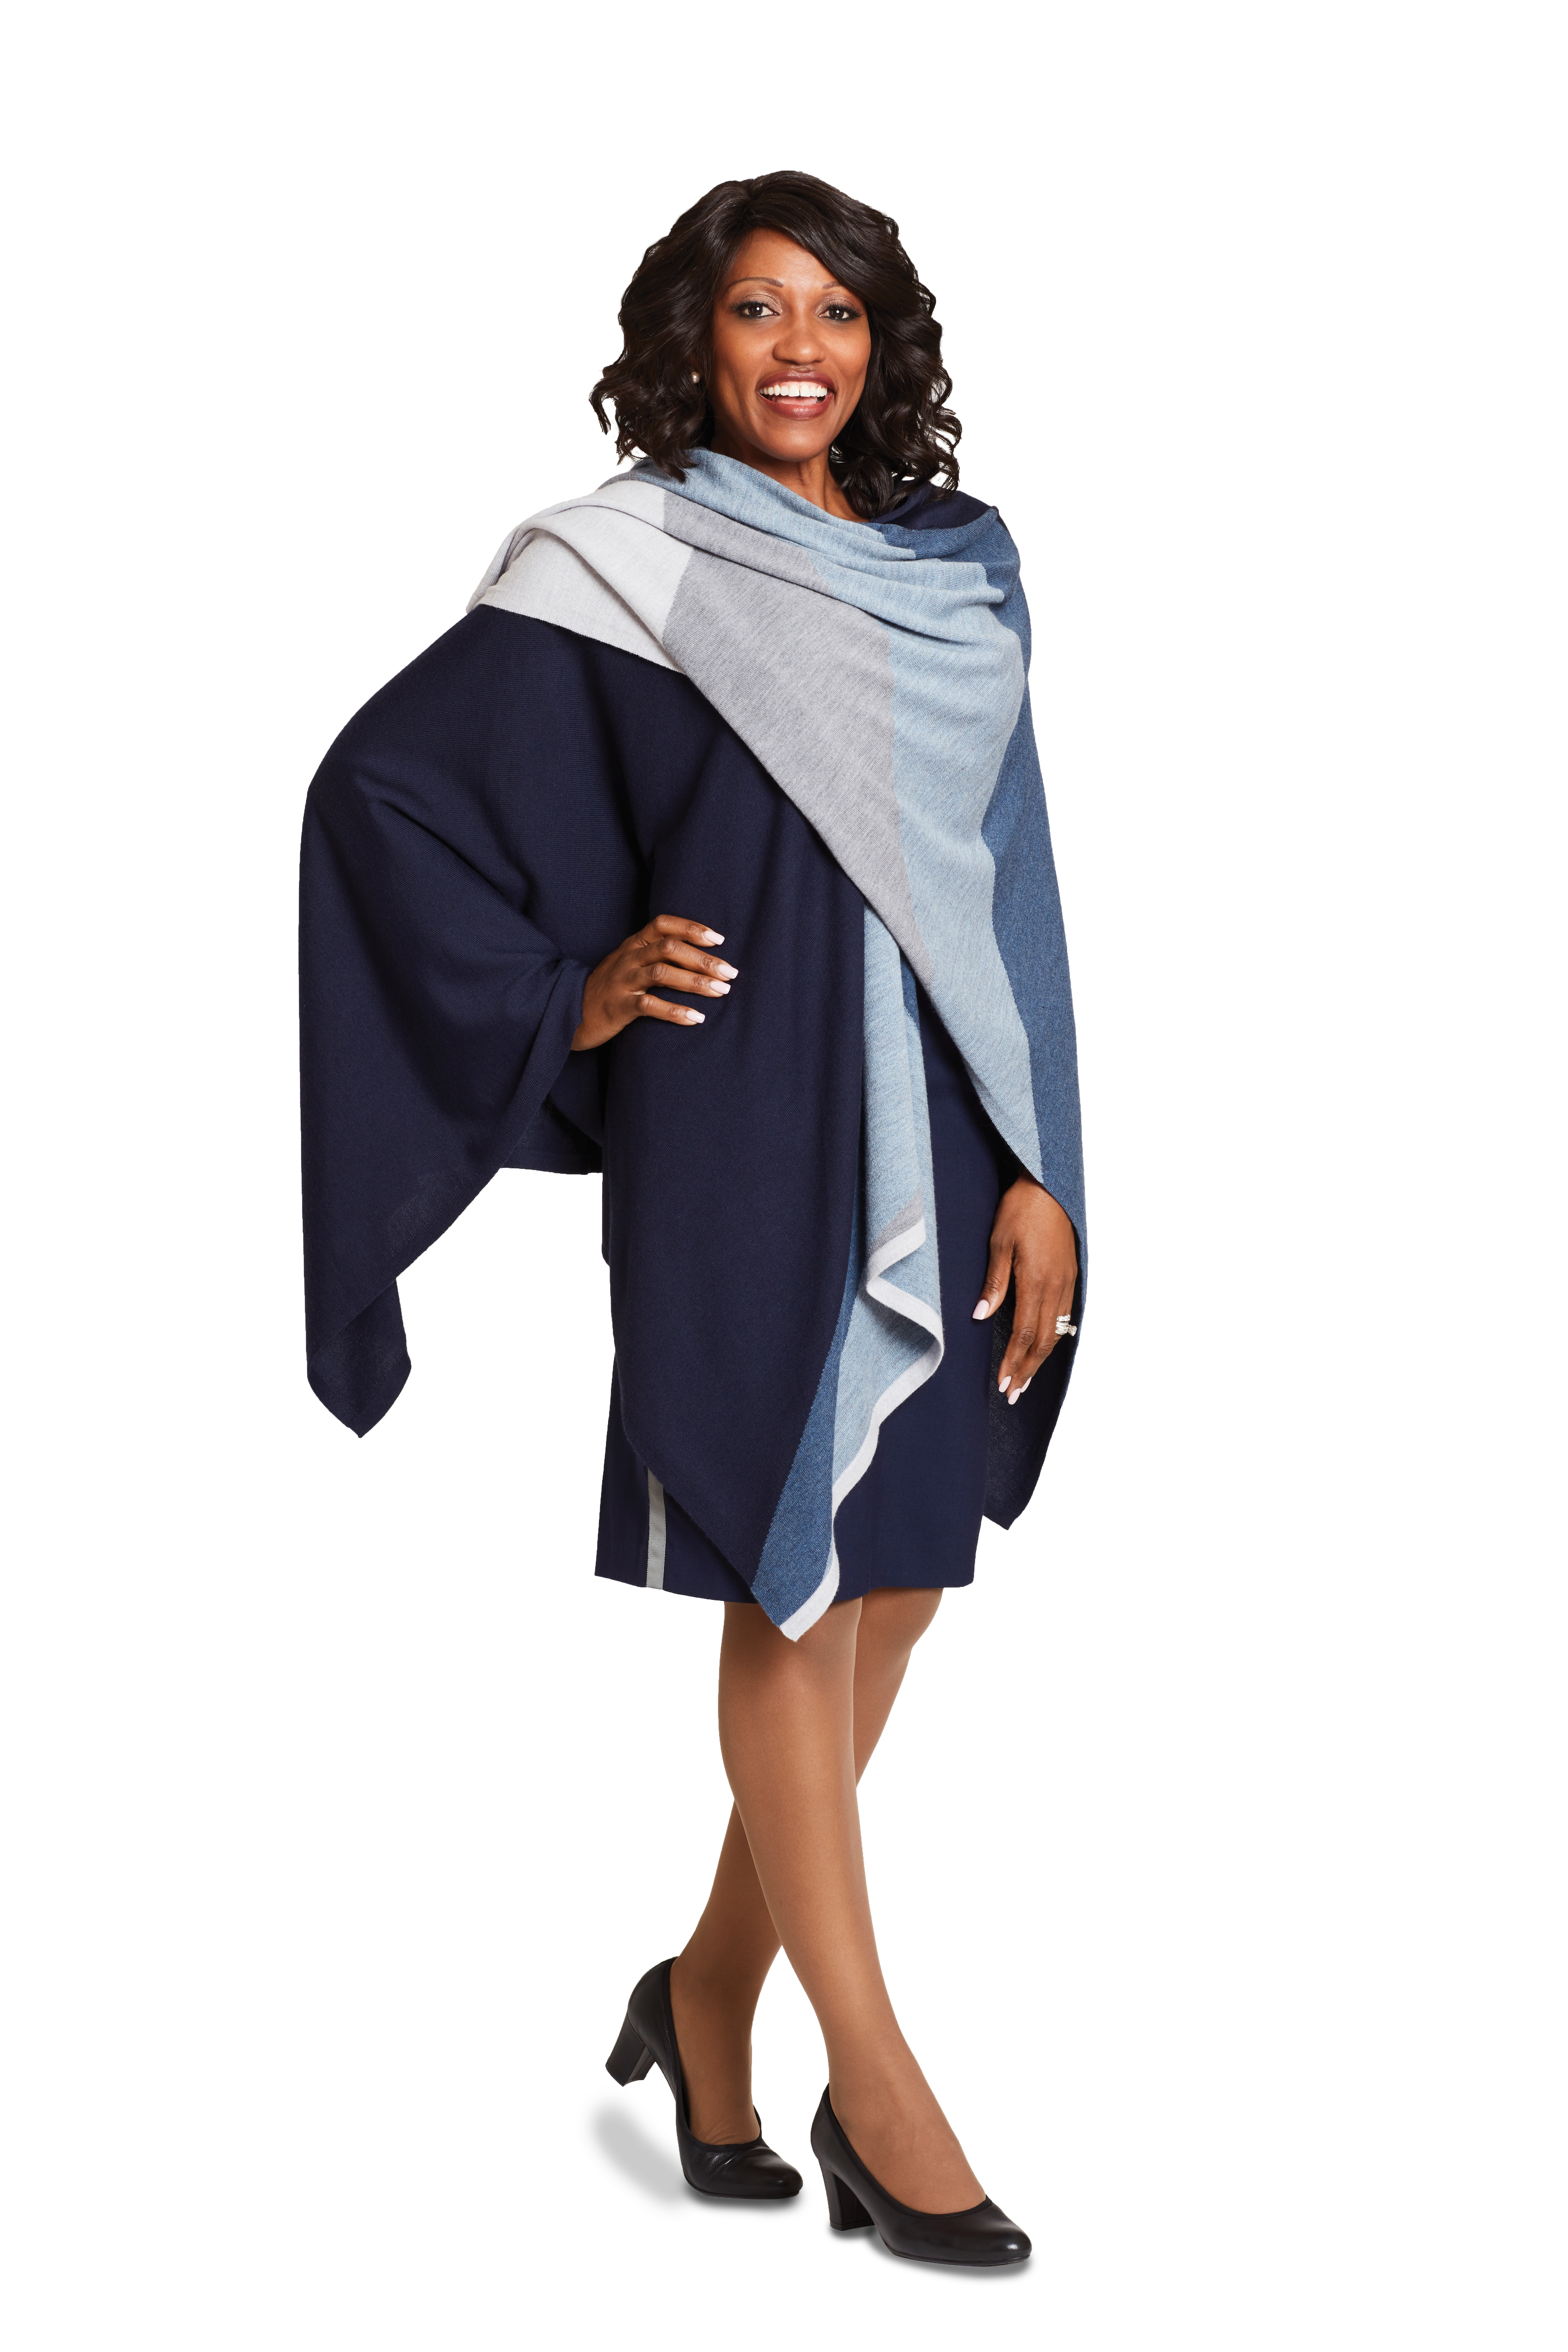 A design by Tracy Reese for United's female flight attendants.